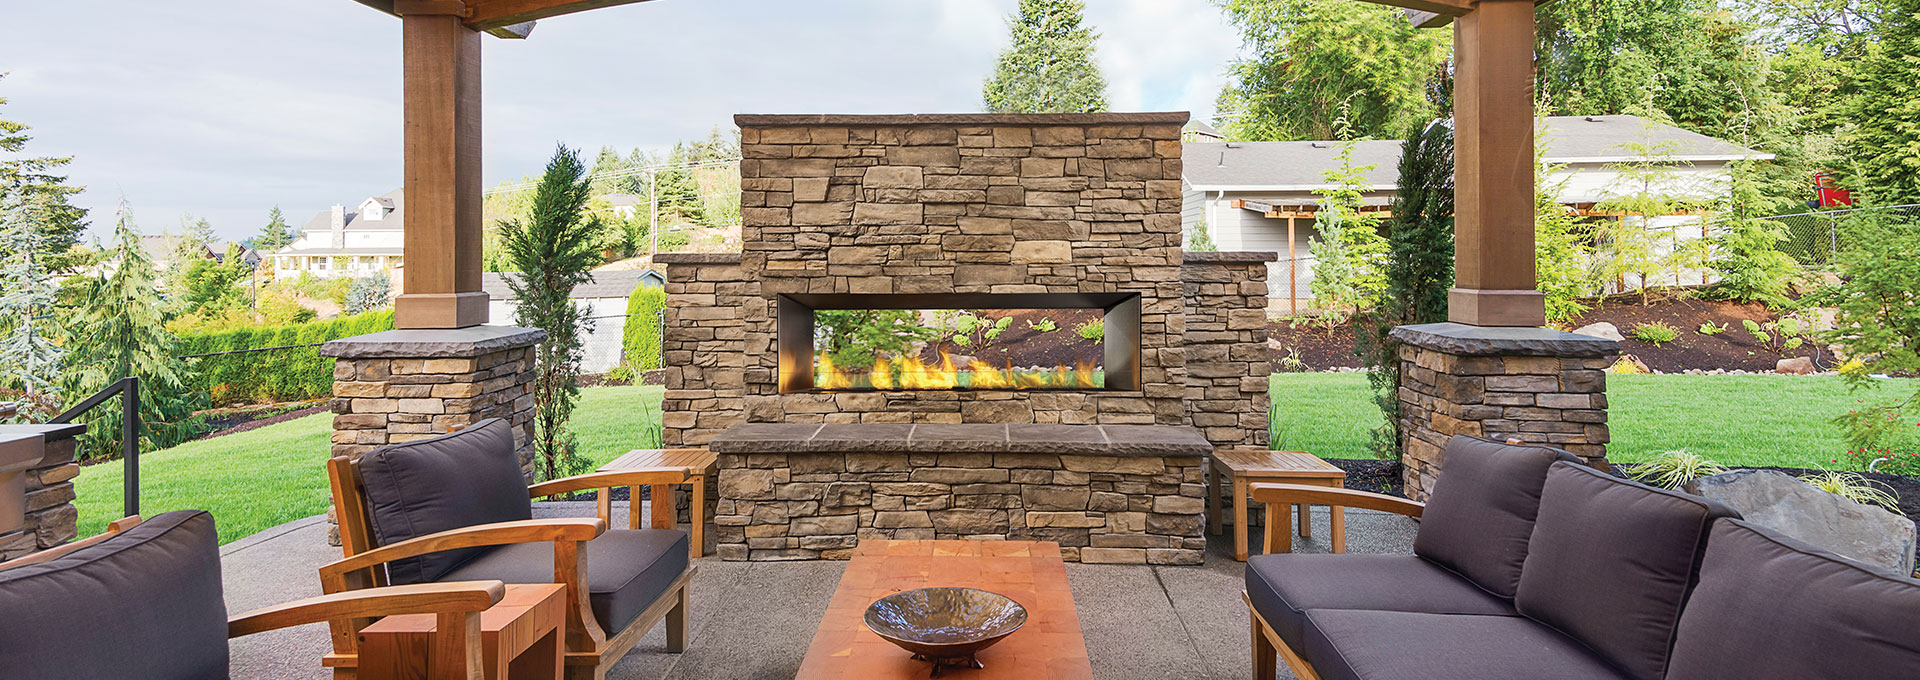 Best Outdoor Fireplaces 2018: 5 Features To Look For